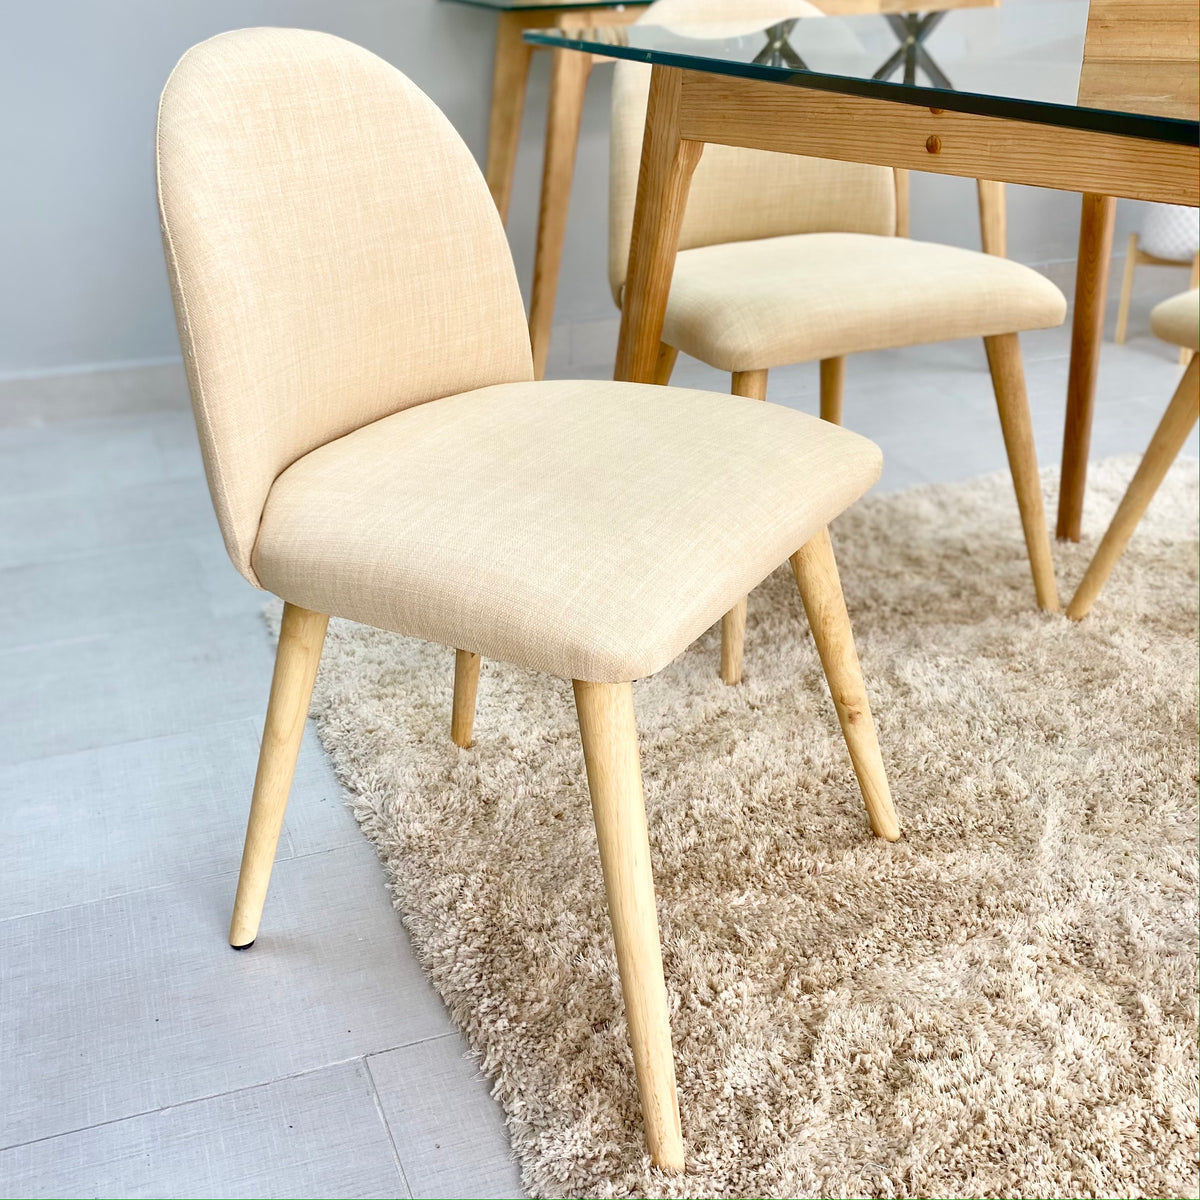 Paulette Ivory Wooden Legs Chair